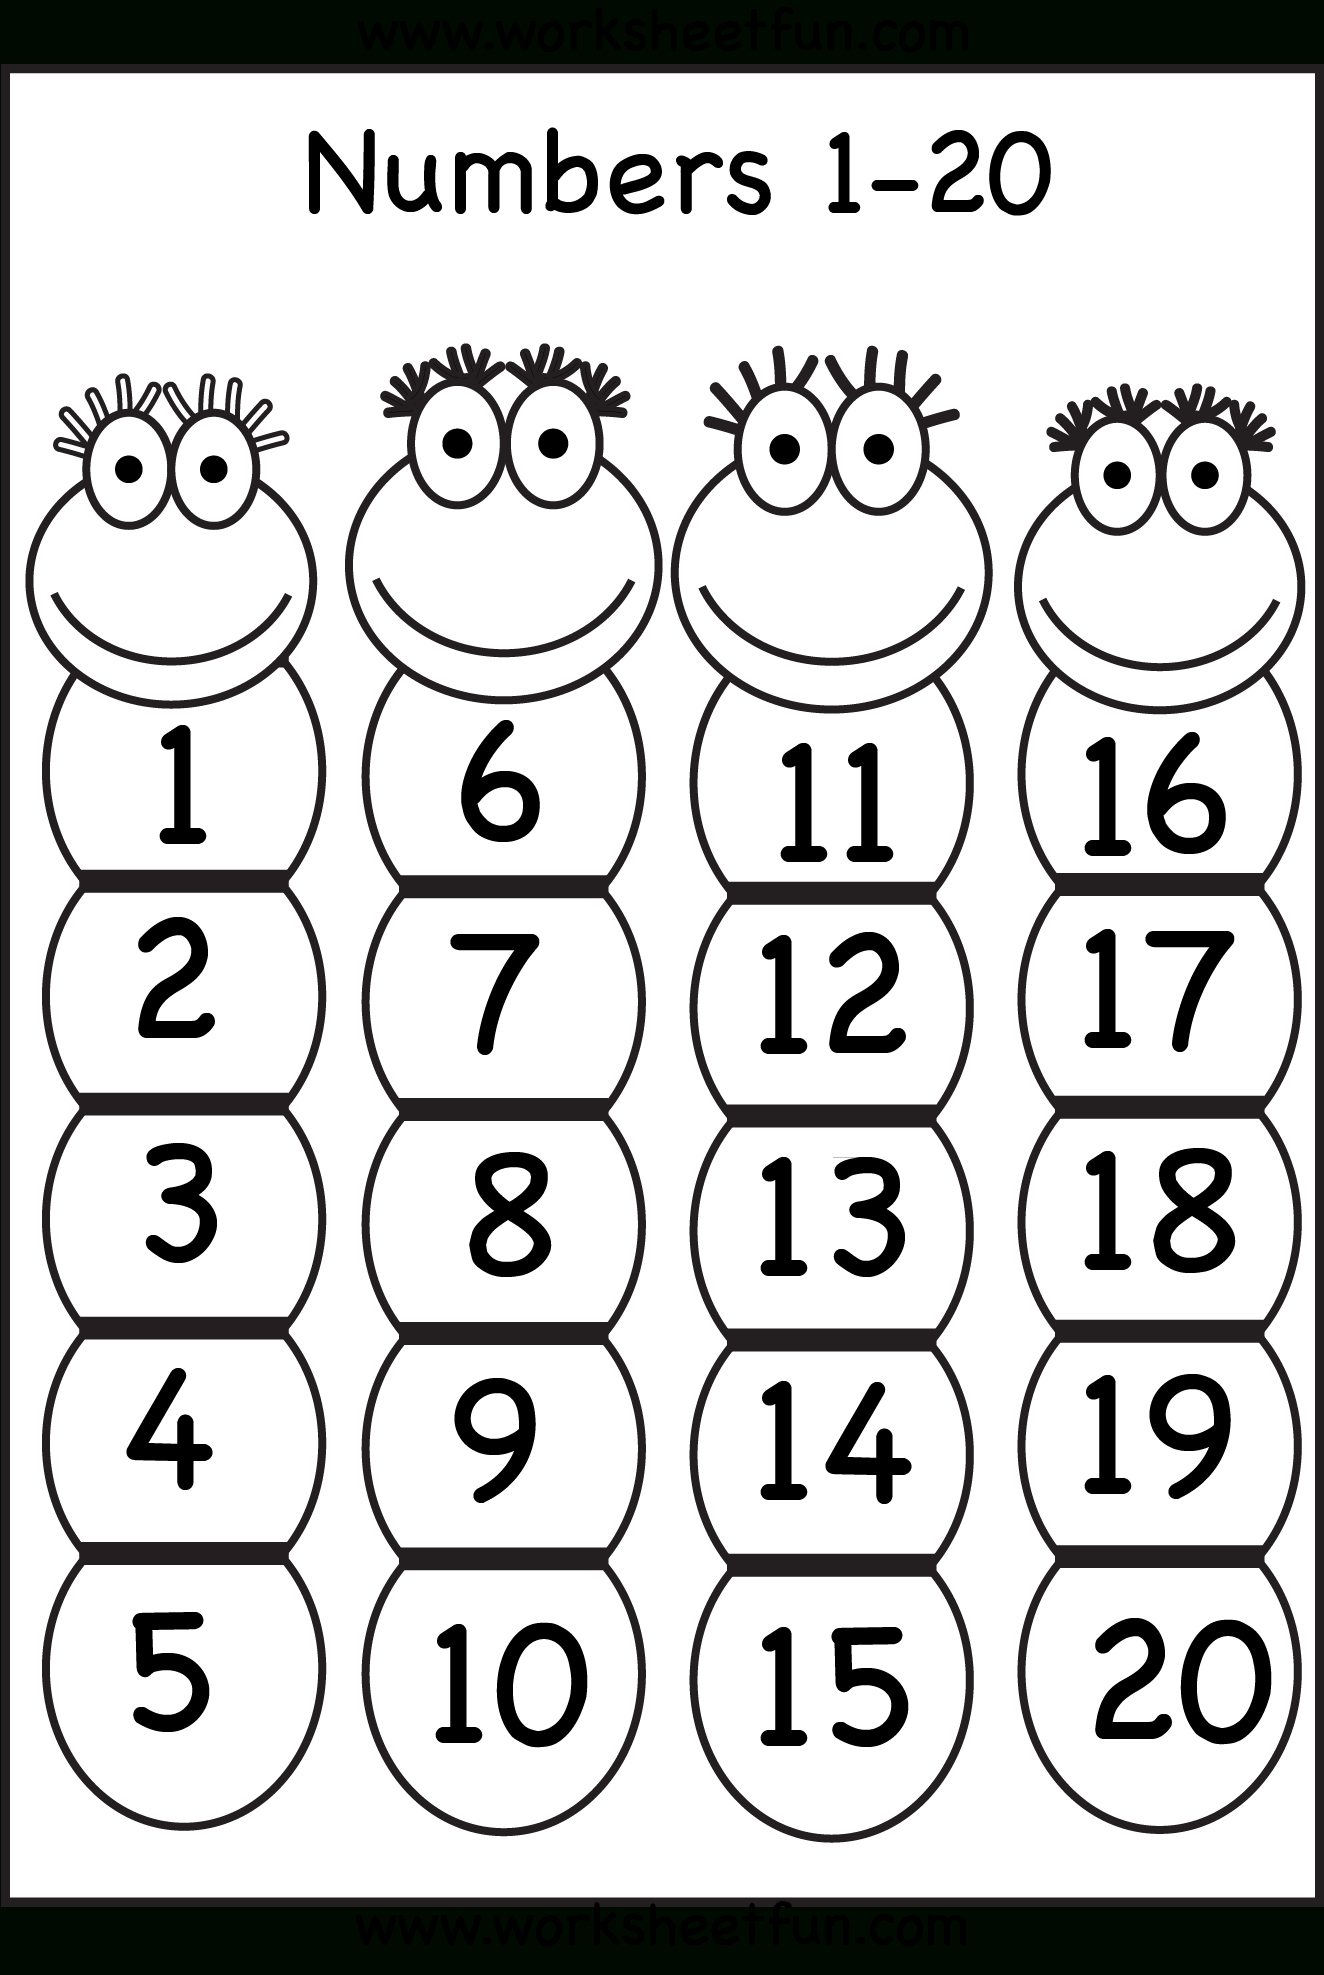 Numbers 1-20 | Printable Worksheets | Numbers Preschool, Preschool - Free Printable Numbers 1 20 Worksheets